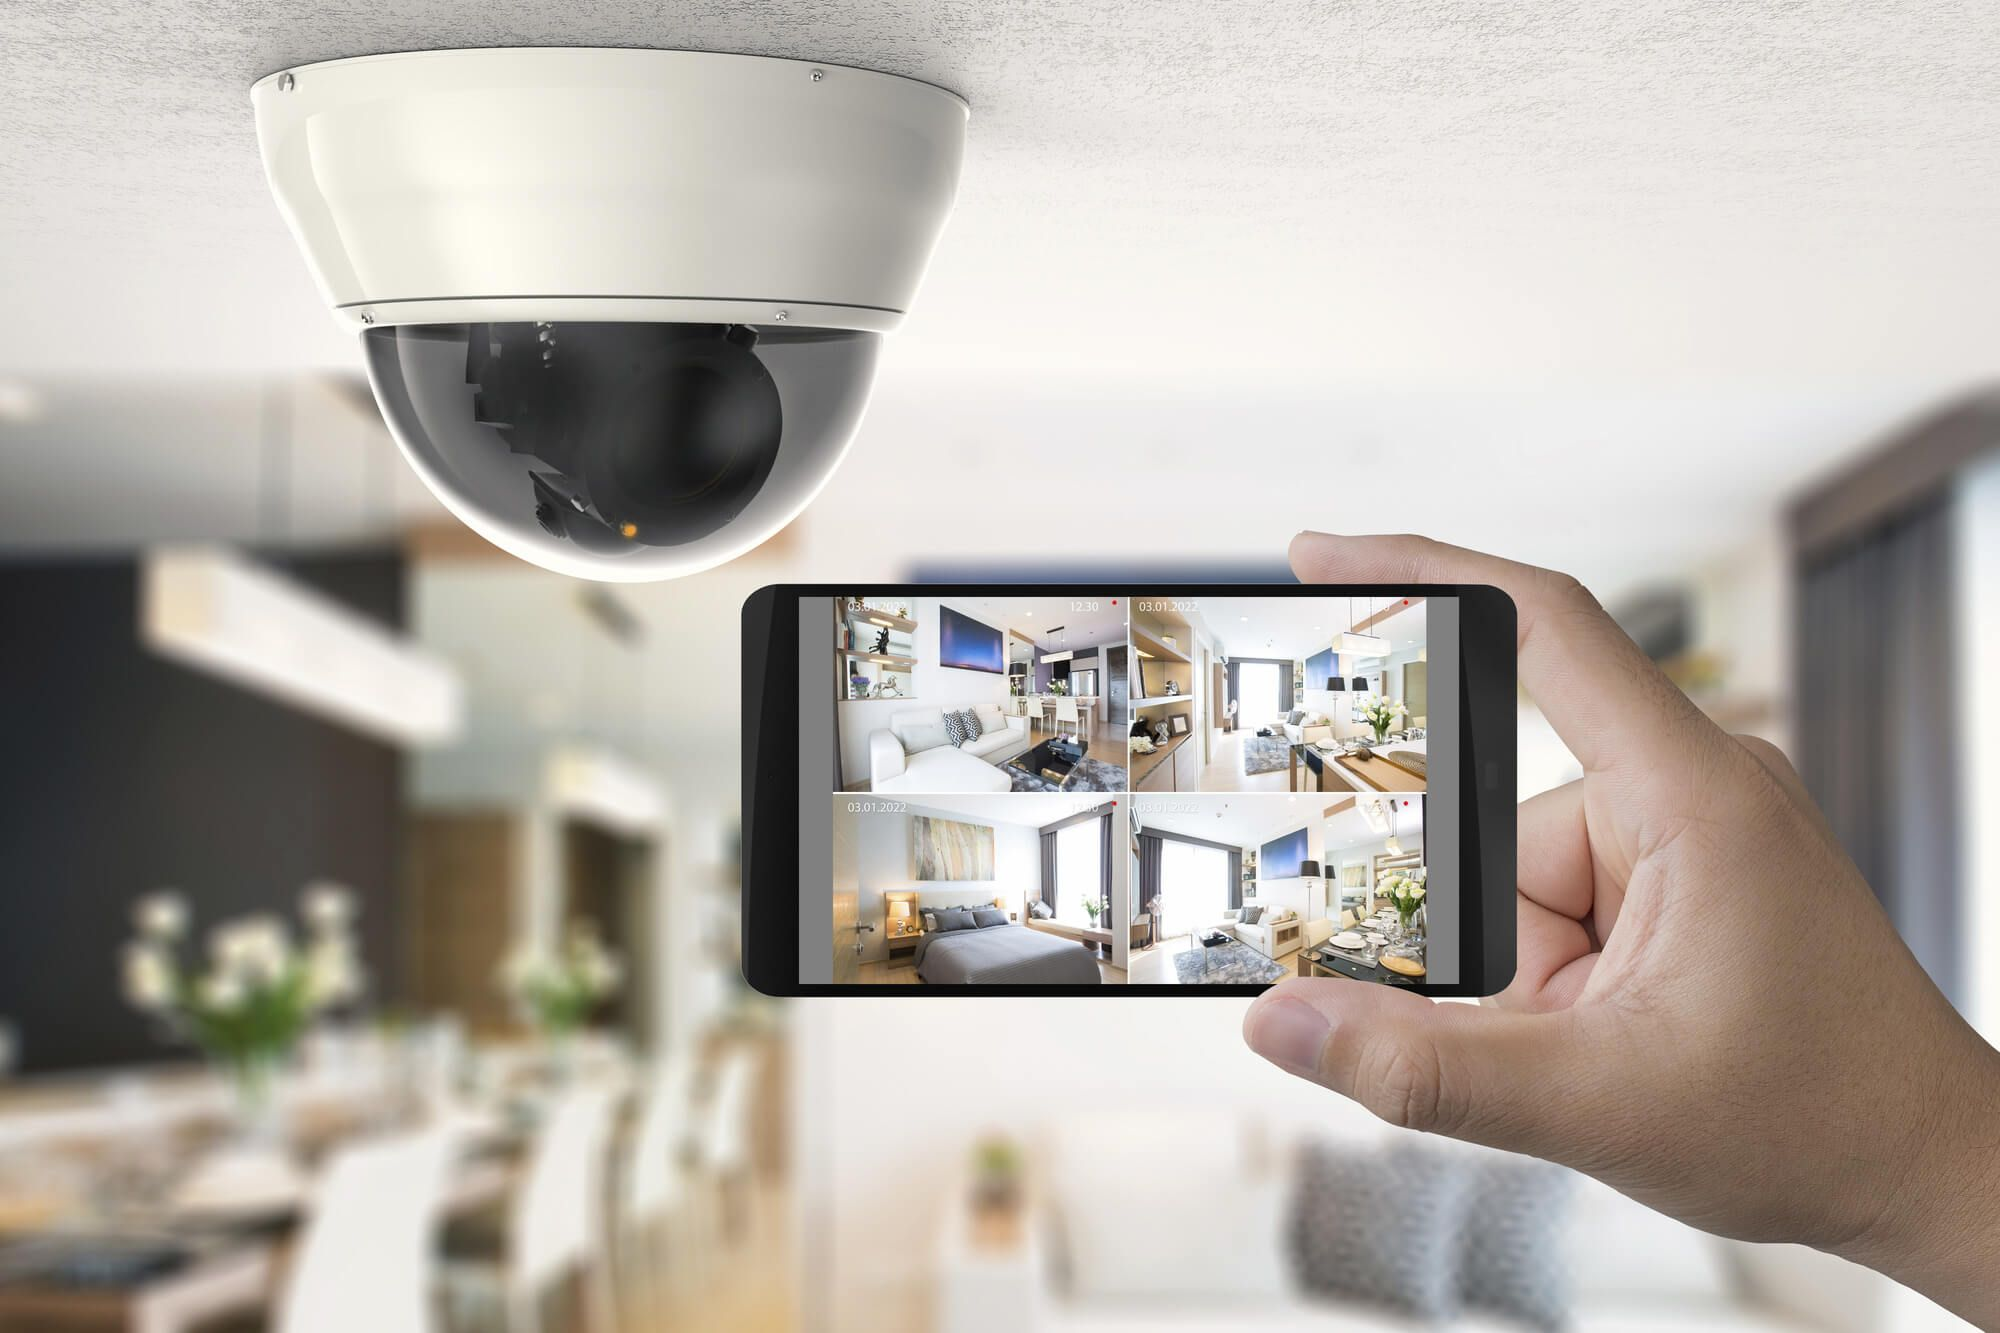 10 Simple Security Systems To Put In Place At Home Get That Right Home Security Tips Home Security Security Cameras For Home